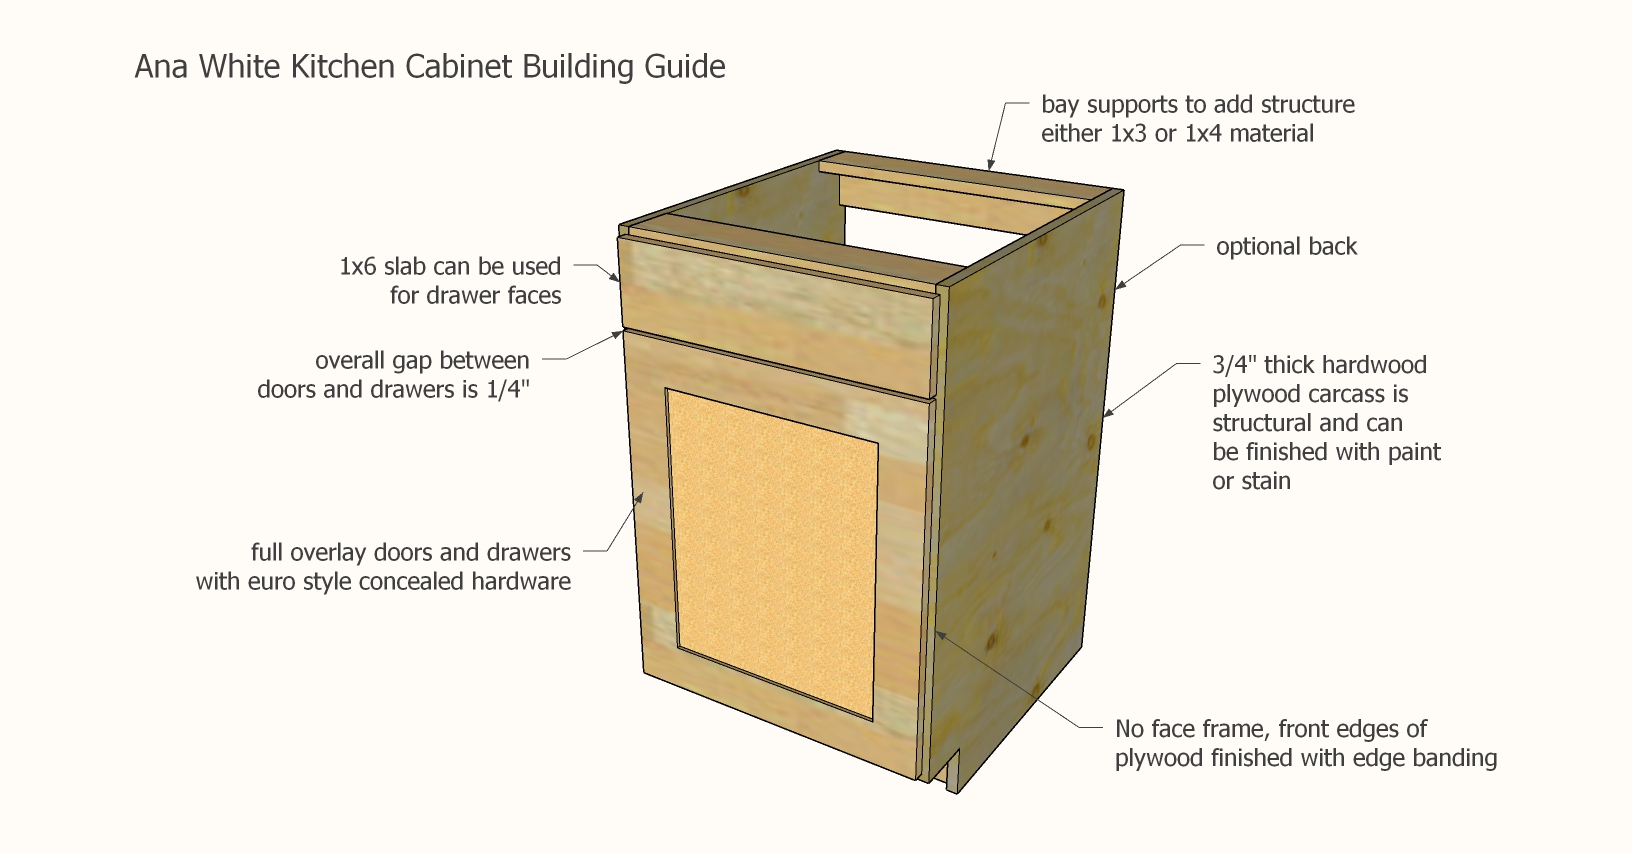 ana white kitchen cabinet building guide